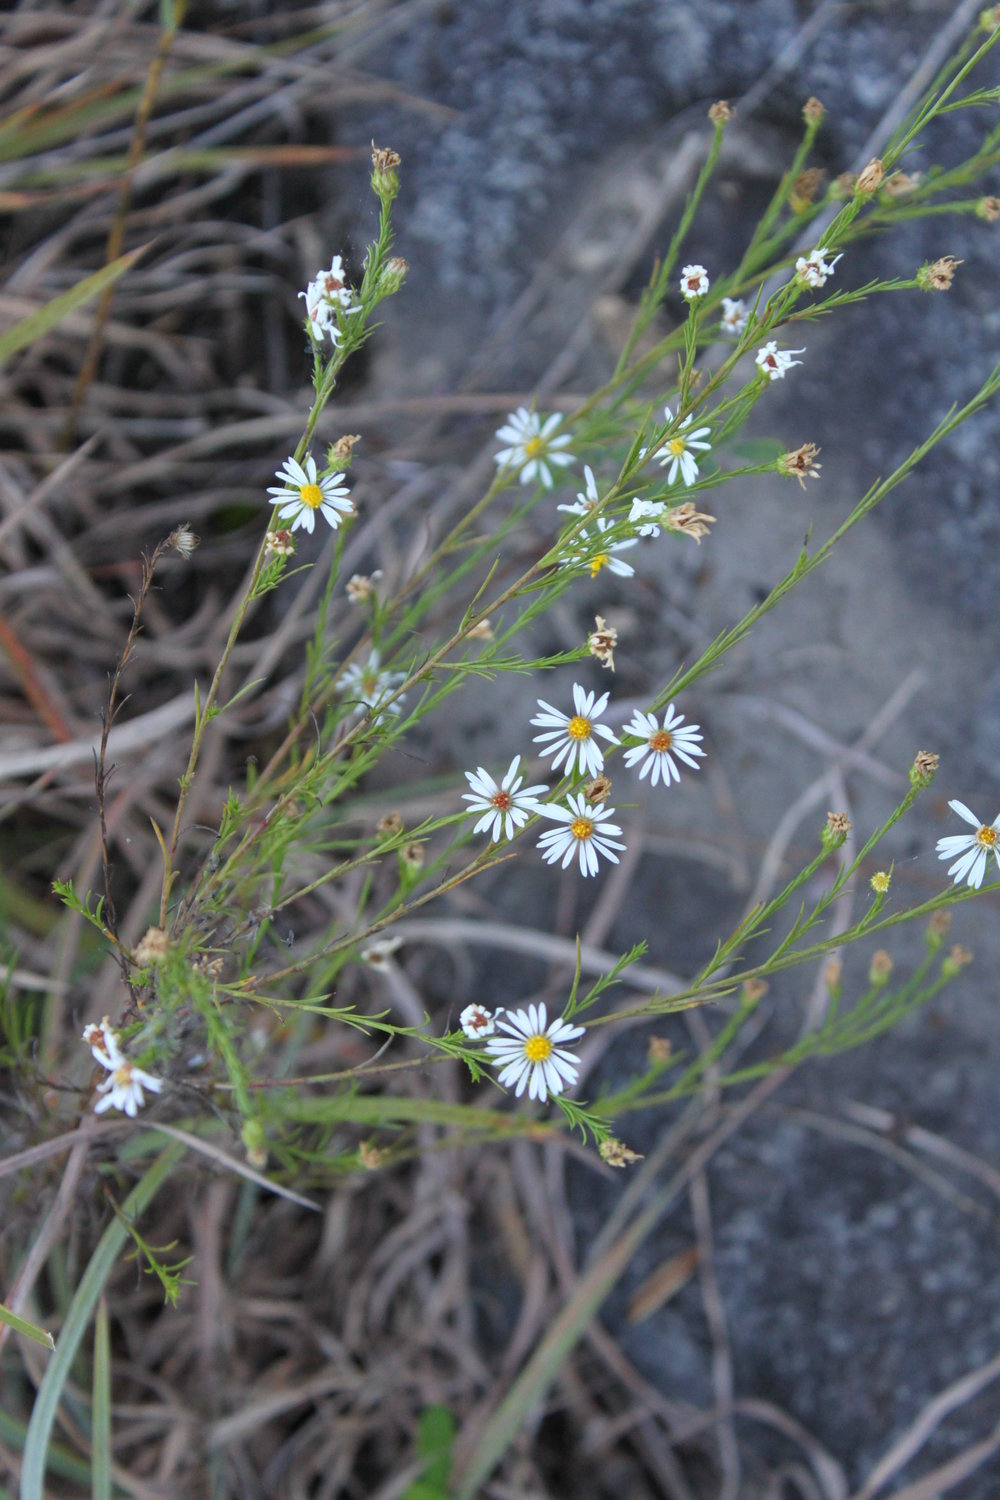 Pringle's Aster (Symphyotrichum pilosum var. pringlei is known only from this single site in Tennessee. Credit: Dwayne Estes.